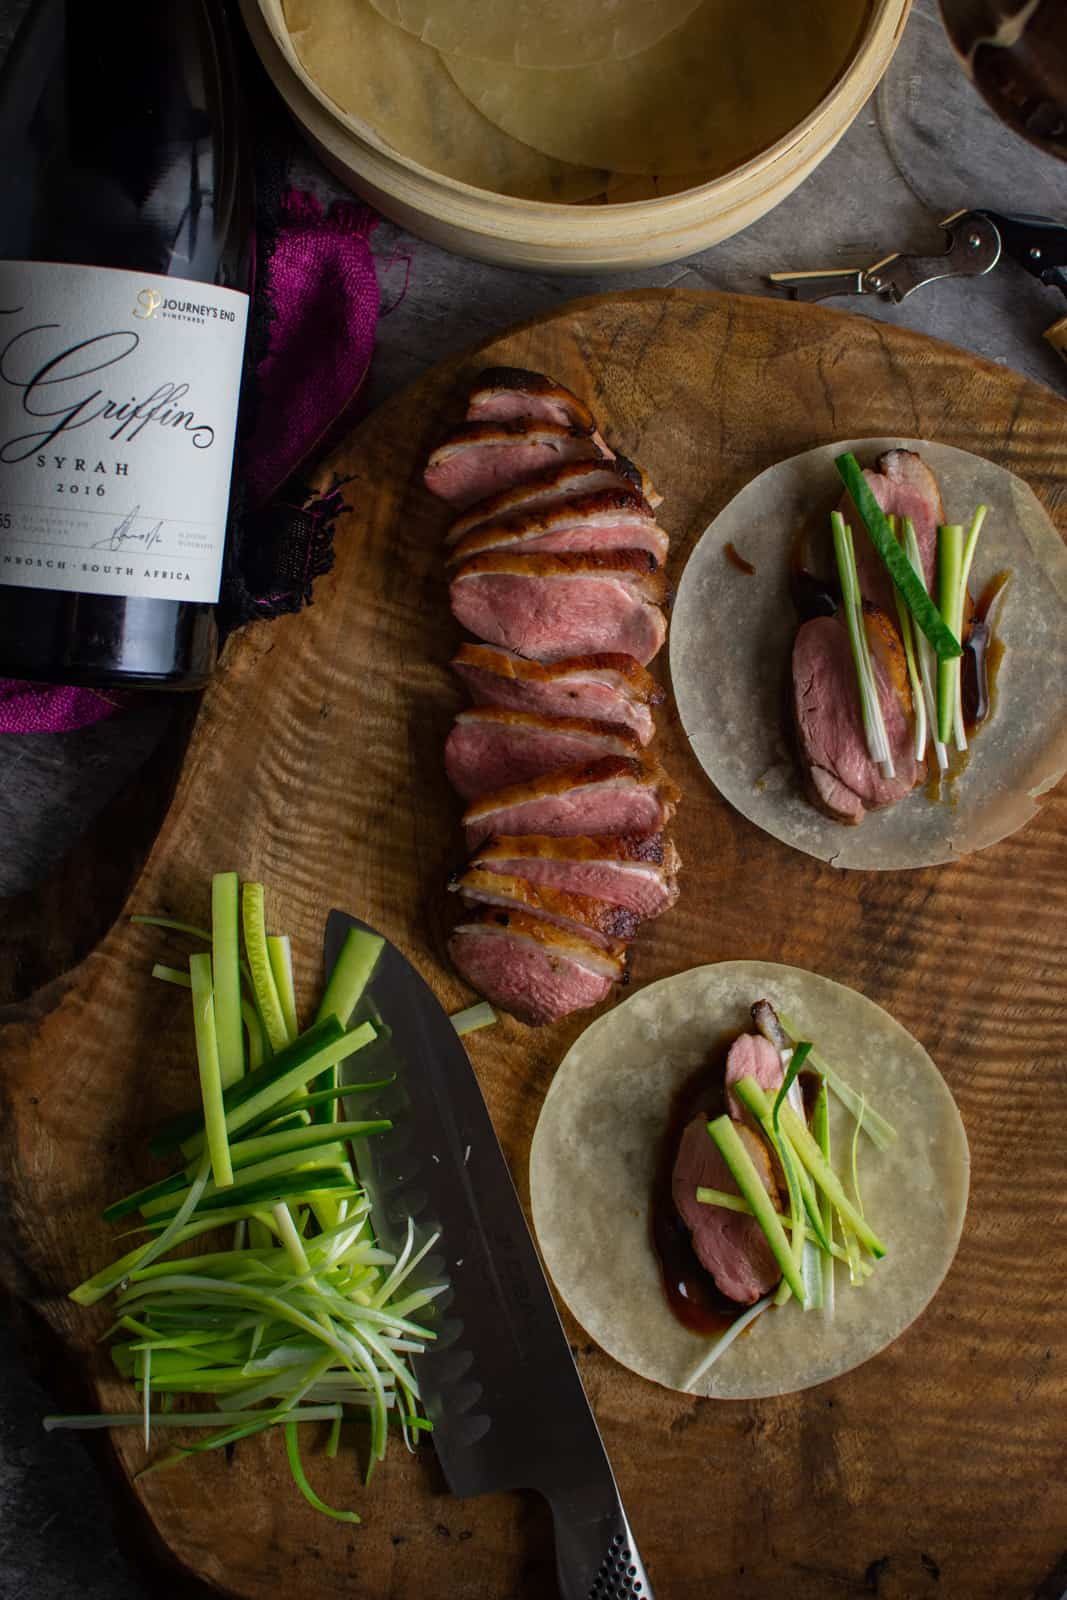 peking duck pancakes on a wooden board, duck breast and Griffin syrah next to board